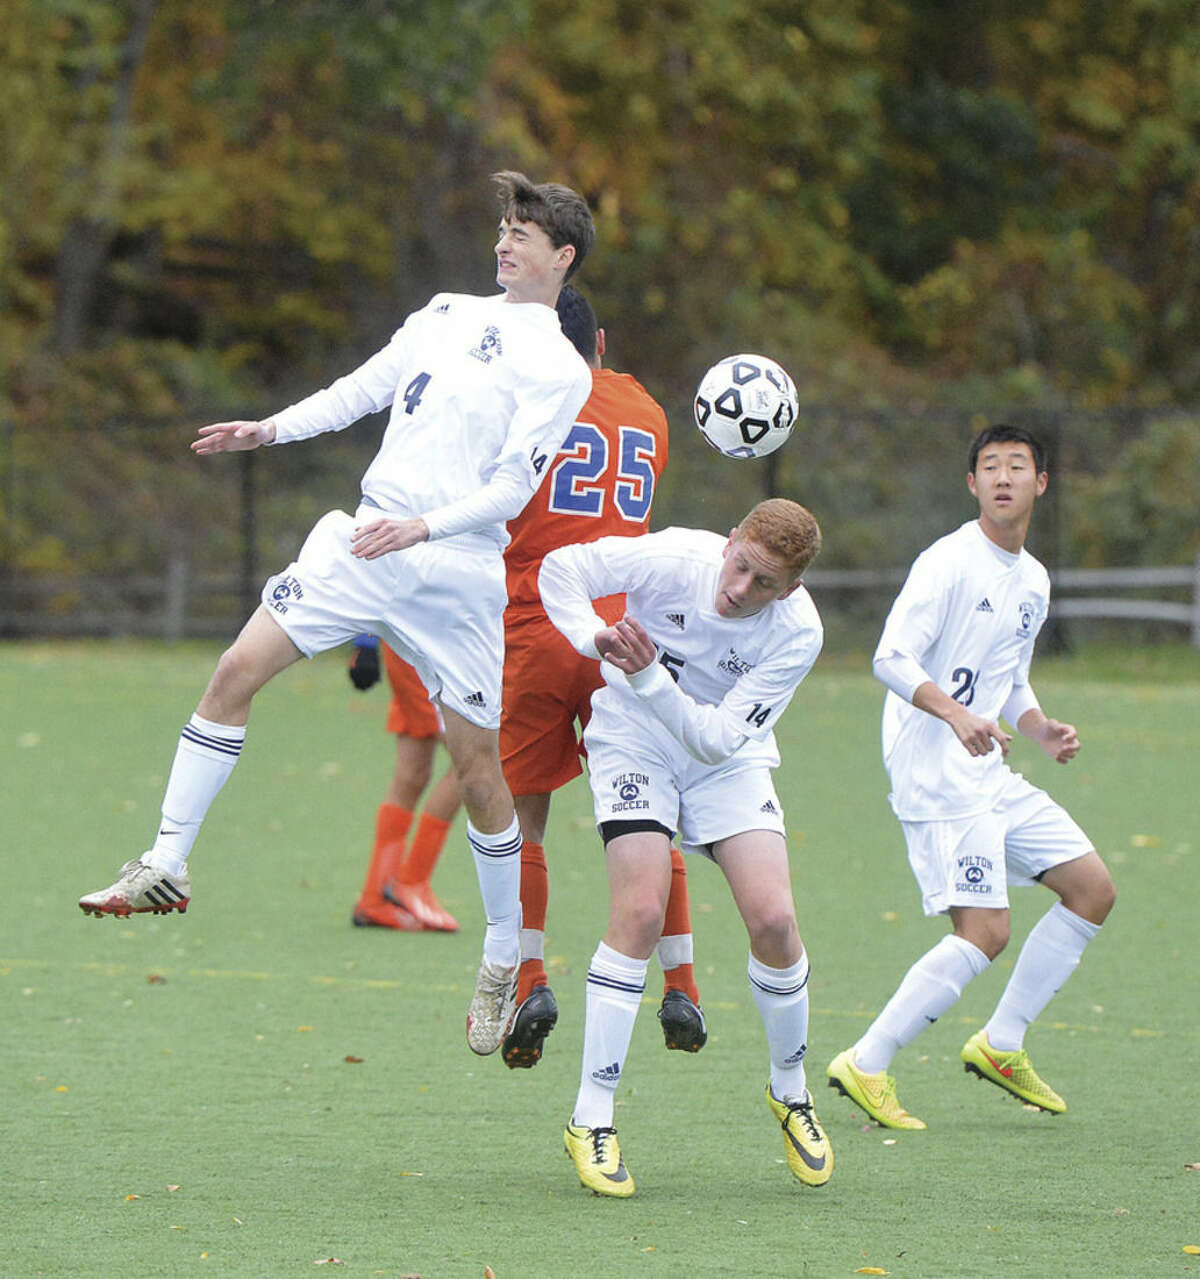 Hour Photo/Alex von Kleydorff Wilton's Daniel Jensen, left, and Max Najarian, center, keep the ball from Danbury as Michael Lynch looks on during Wednesday's game in Wilton.